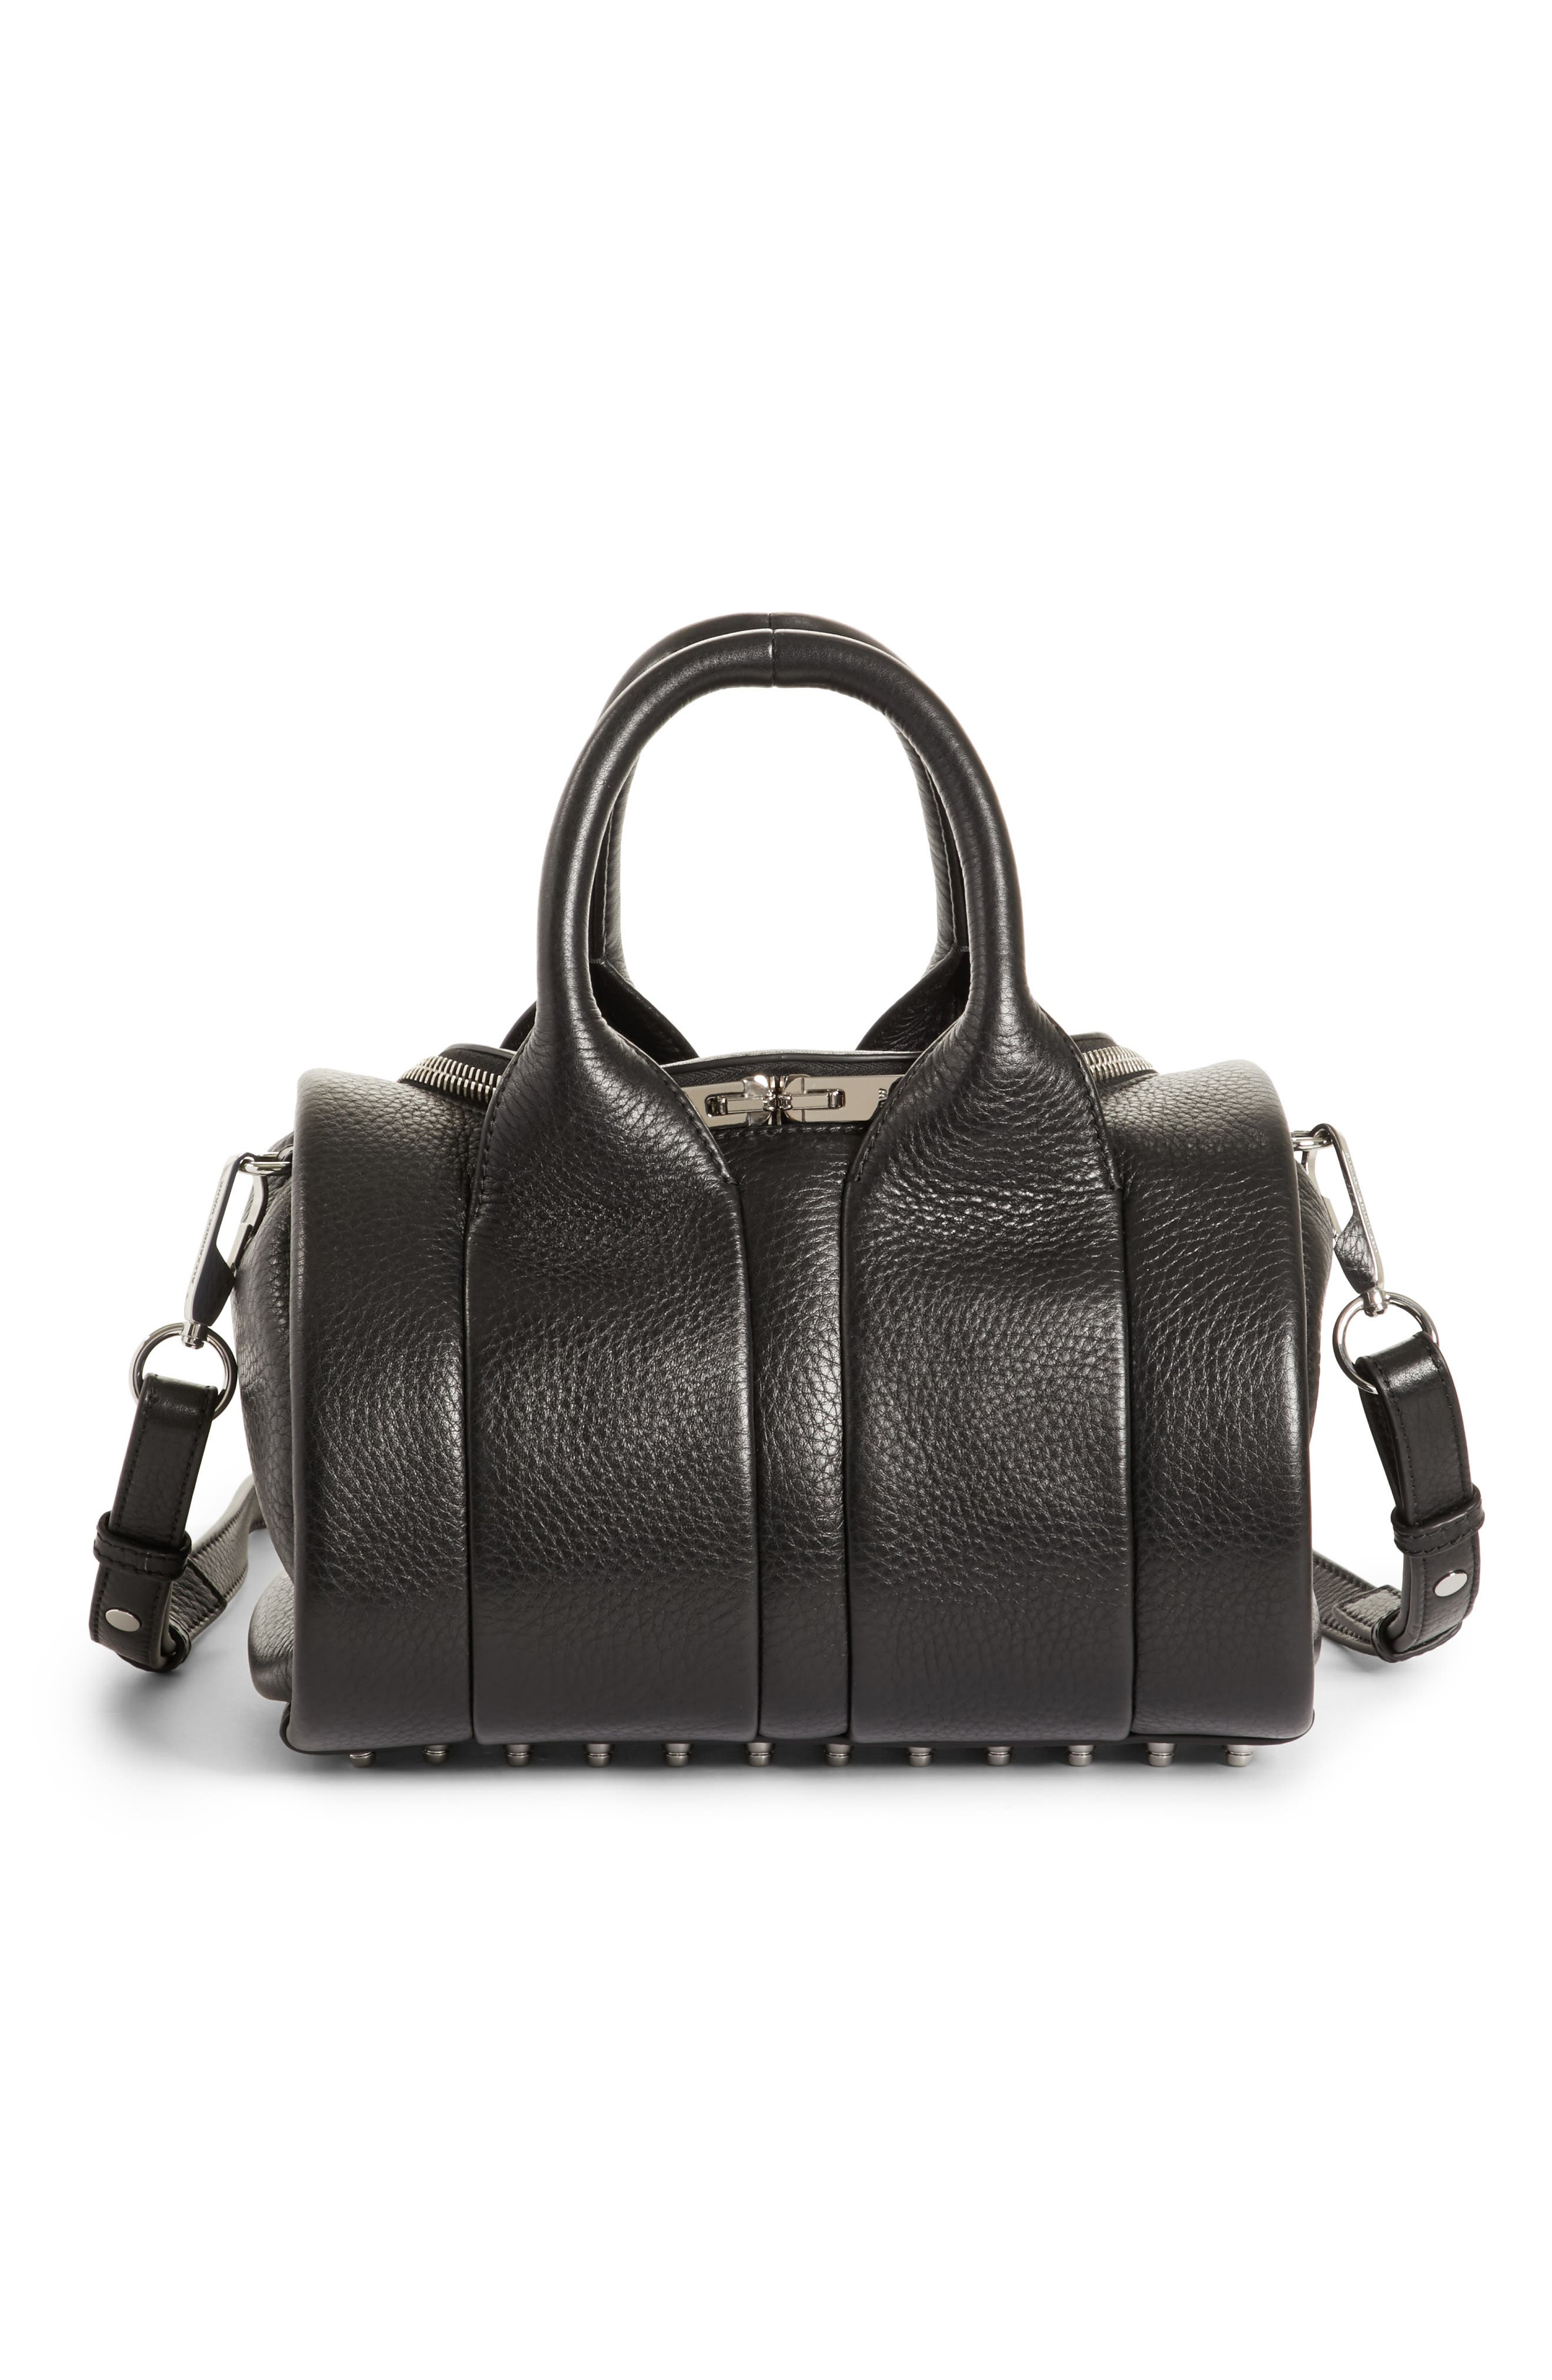 Rockie - Nickel Leather Satchel,                             Main thumbnail 1, color,                             001